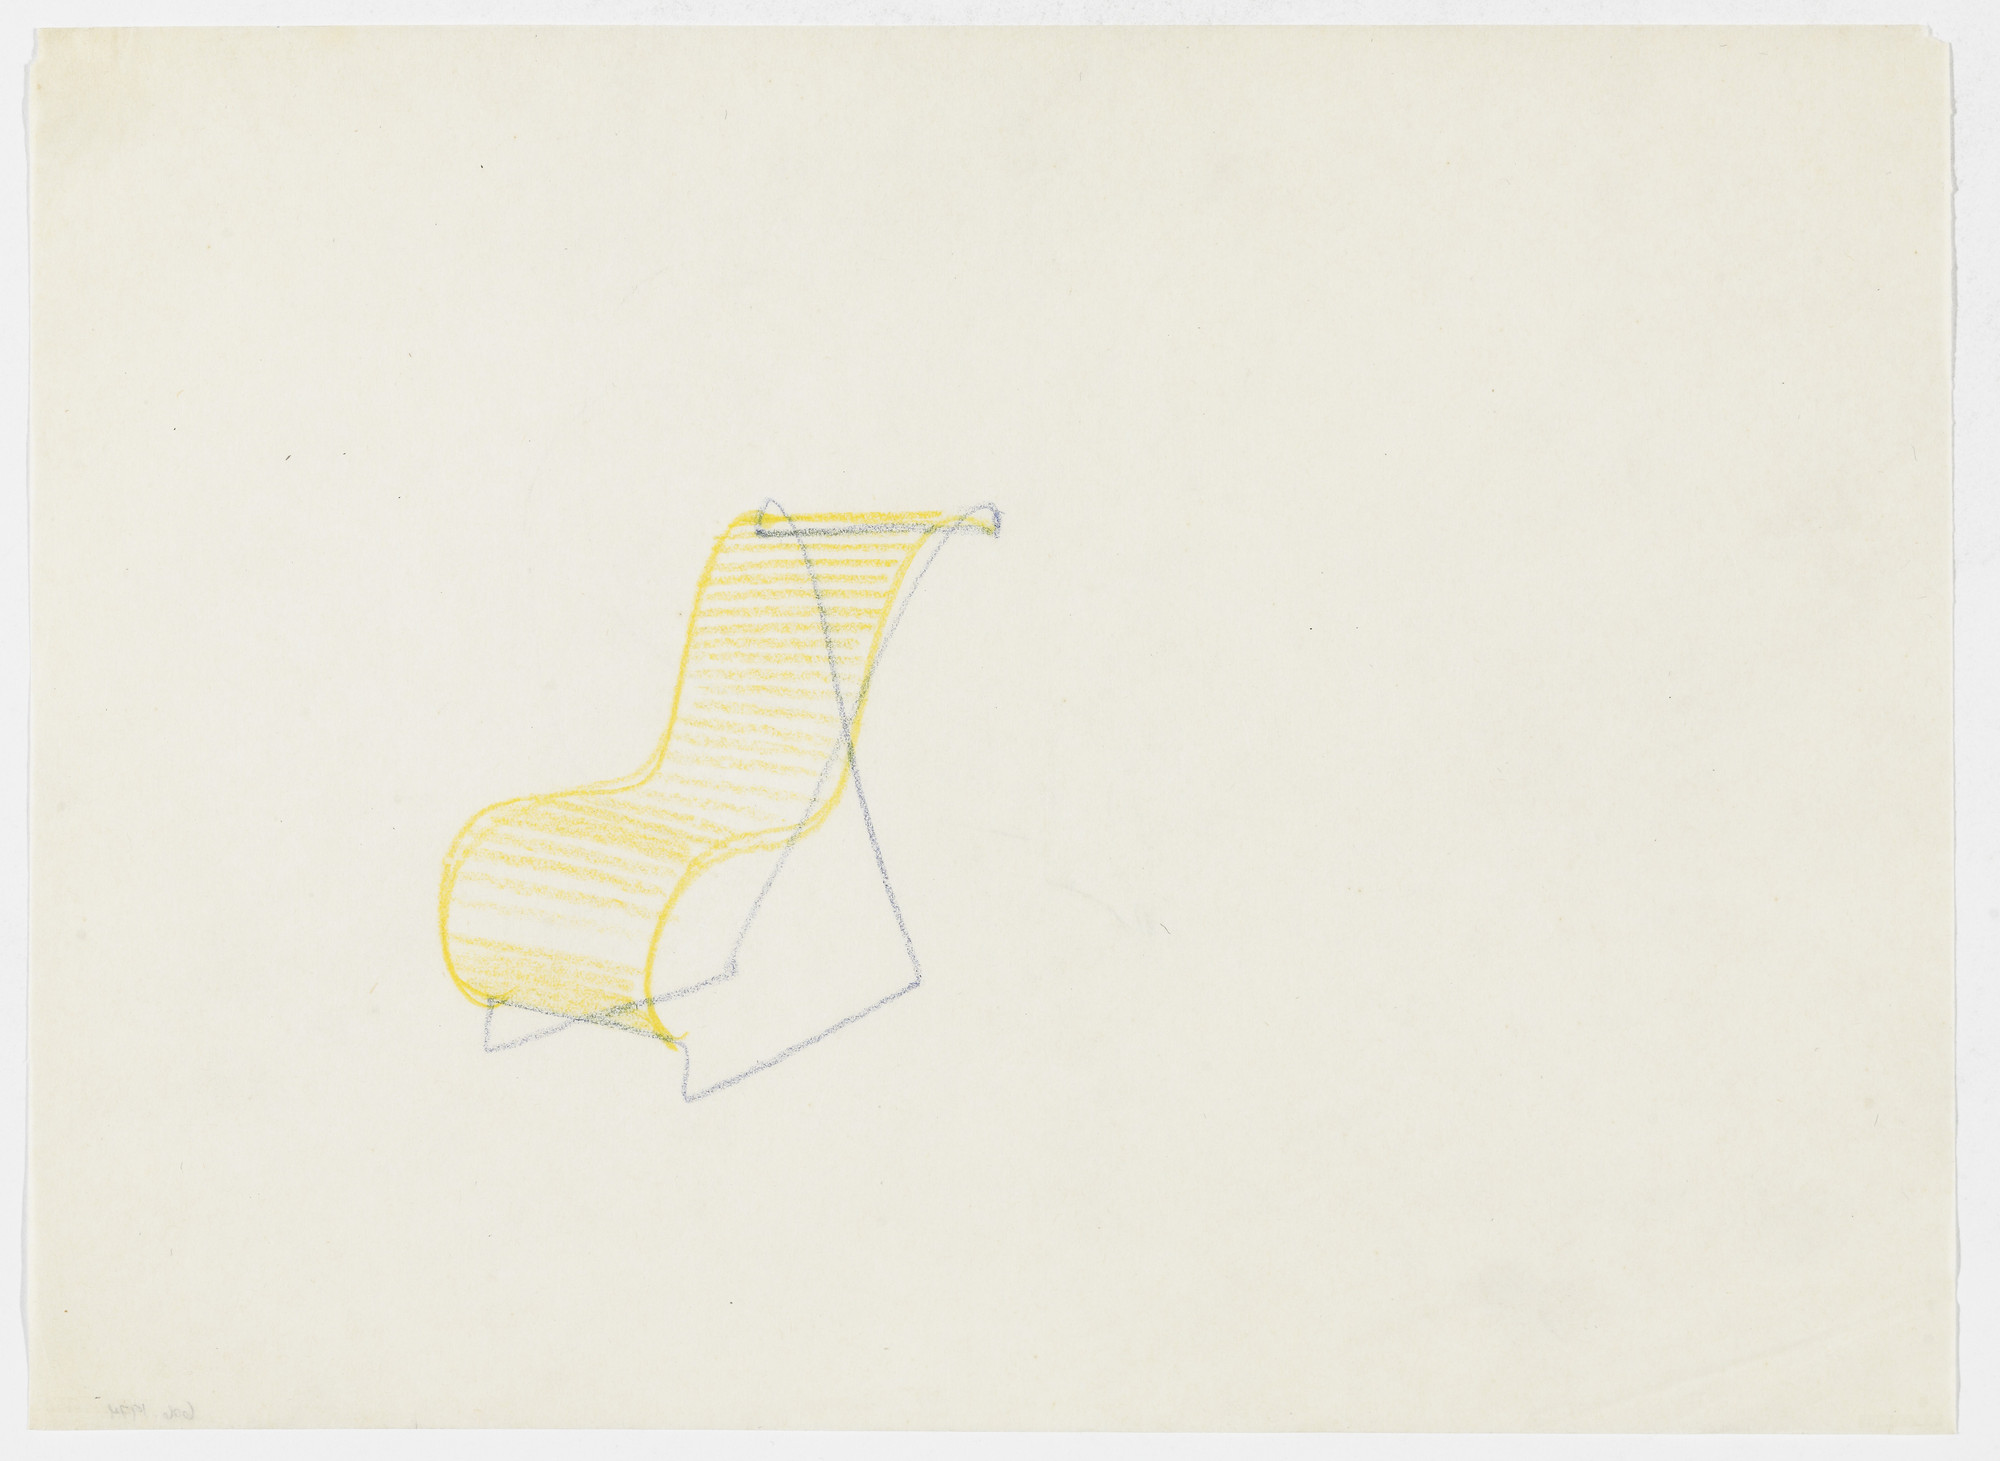 Ludwig Mies van der Rohe. Lounge Chair without Arms (Perspective sketch). 1934